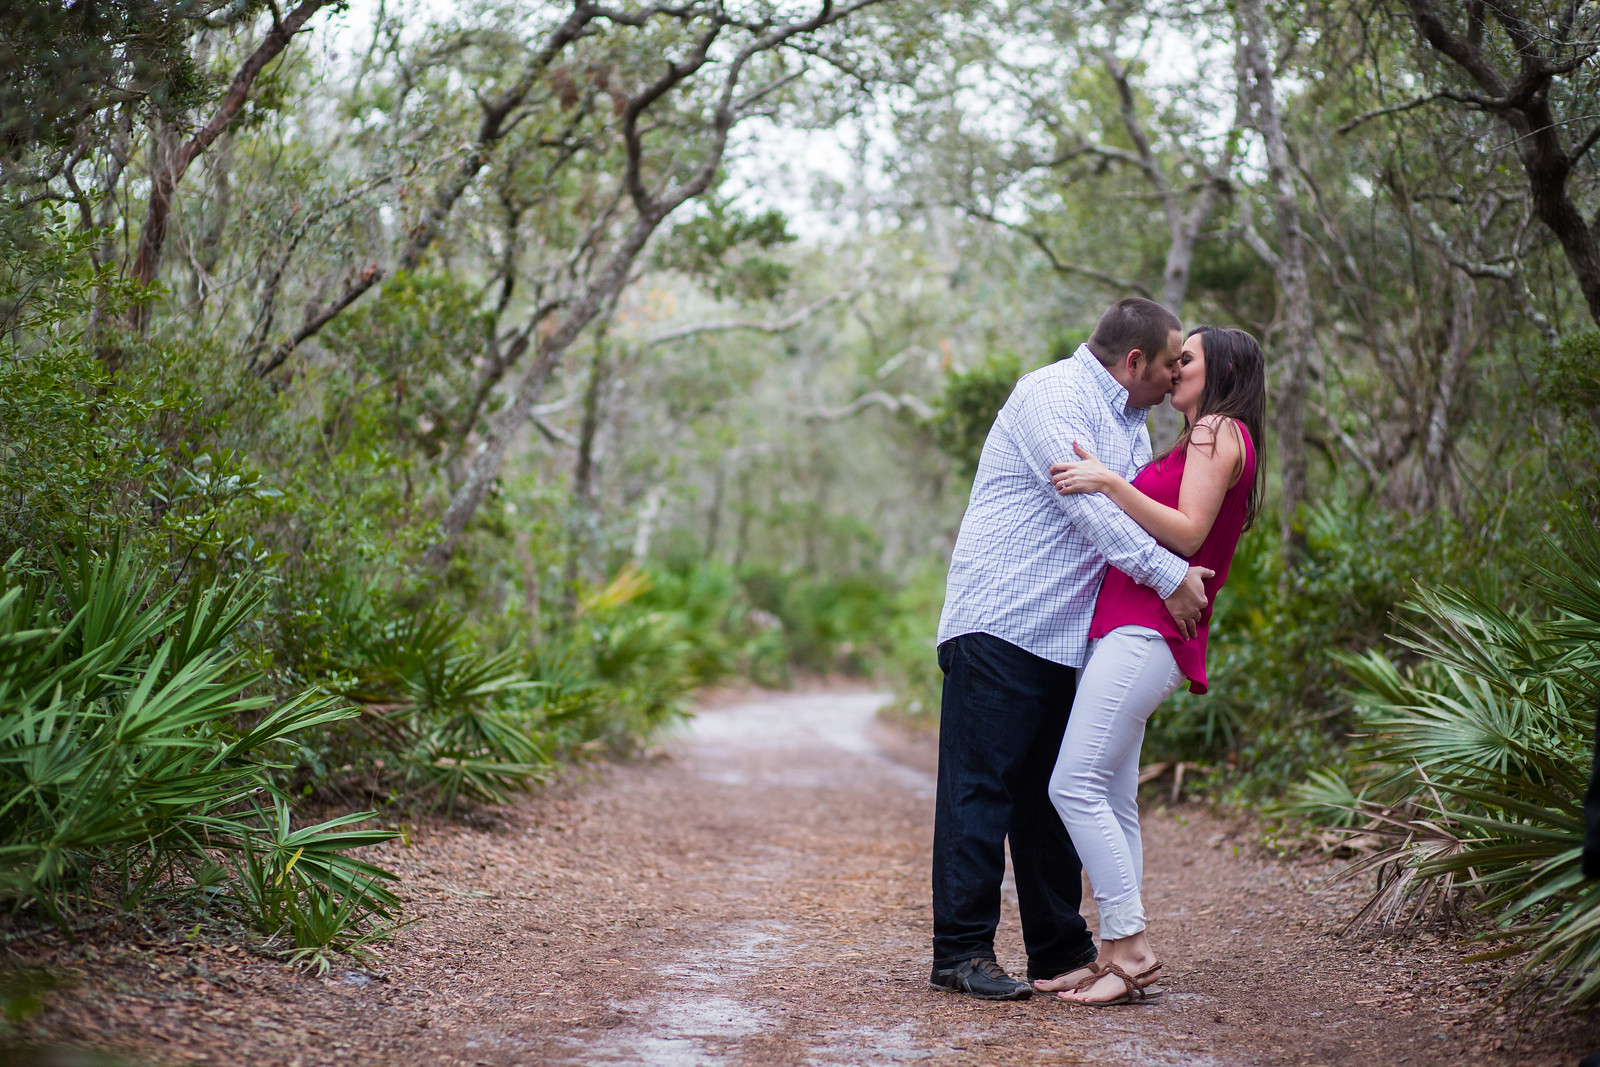 adam-szarmack-big-talbot-island-engagement-18.jpg